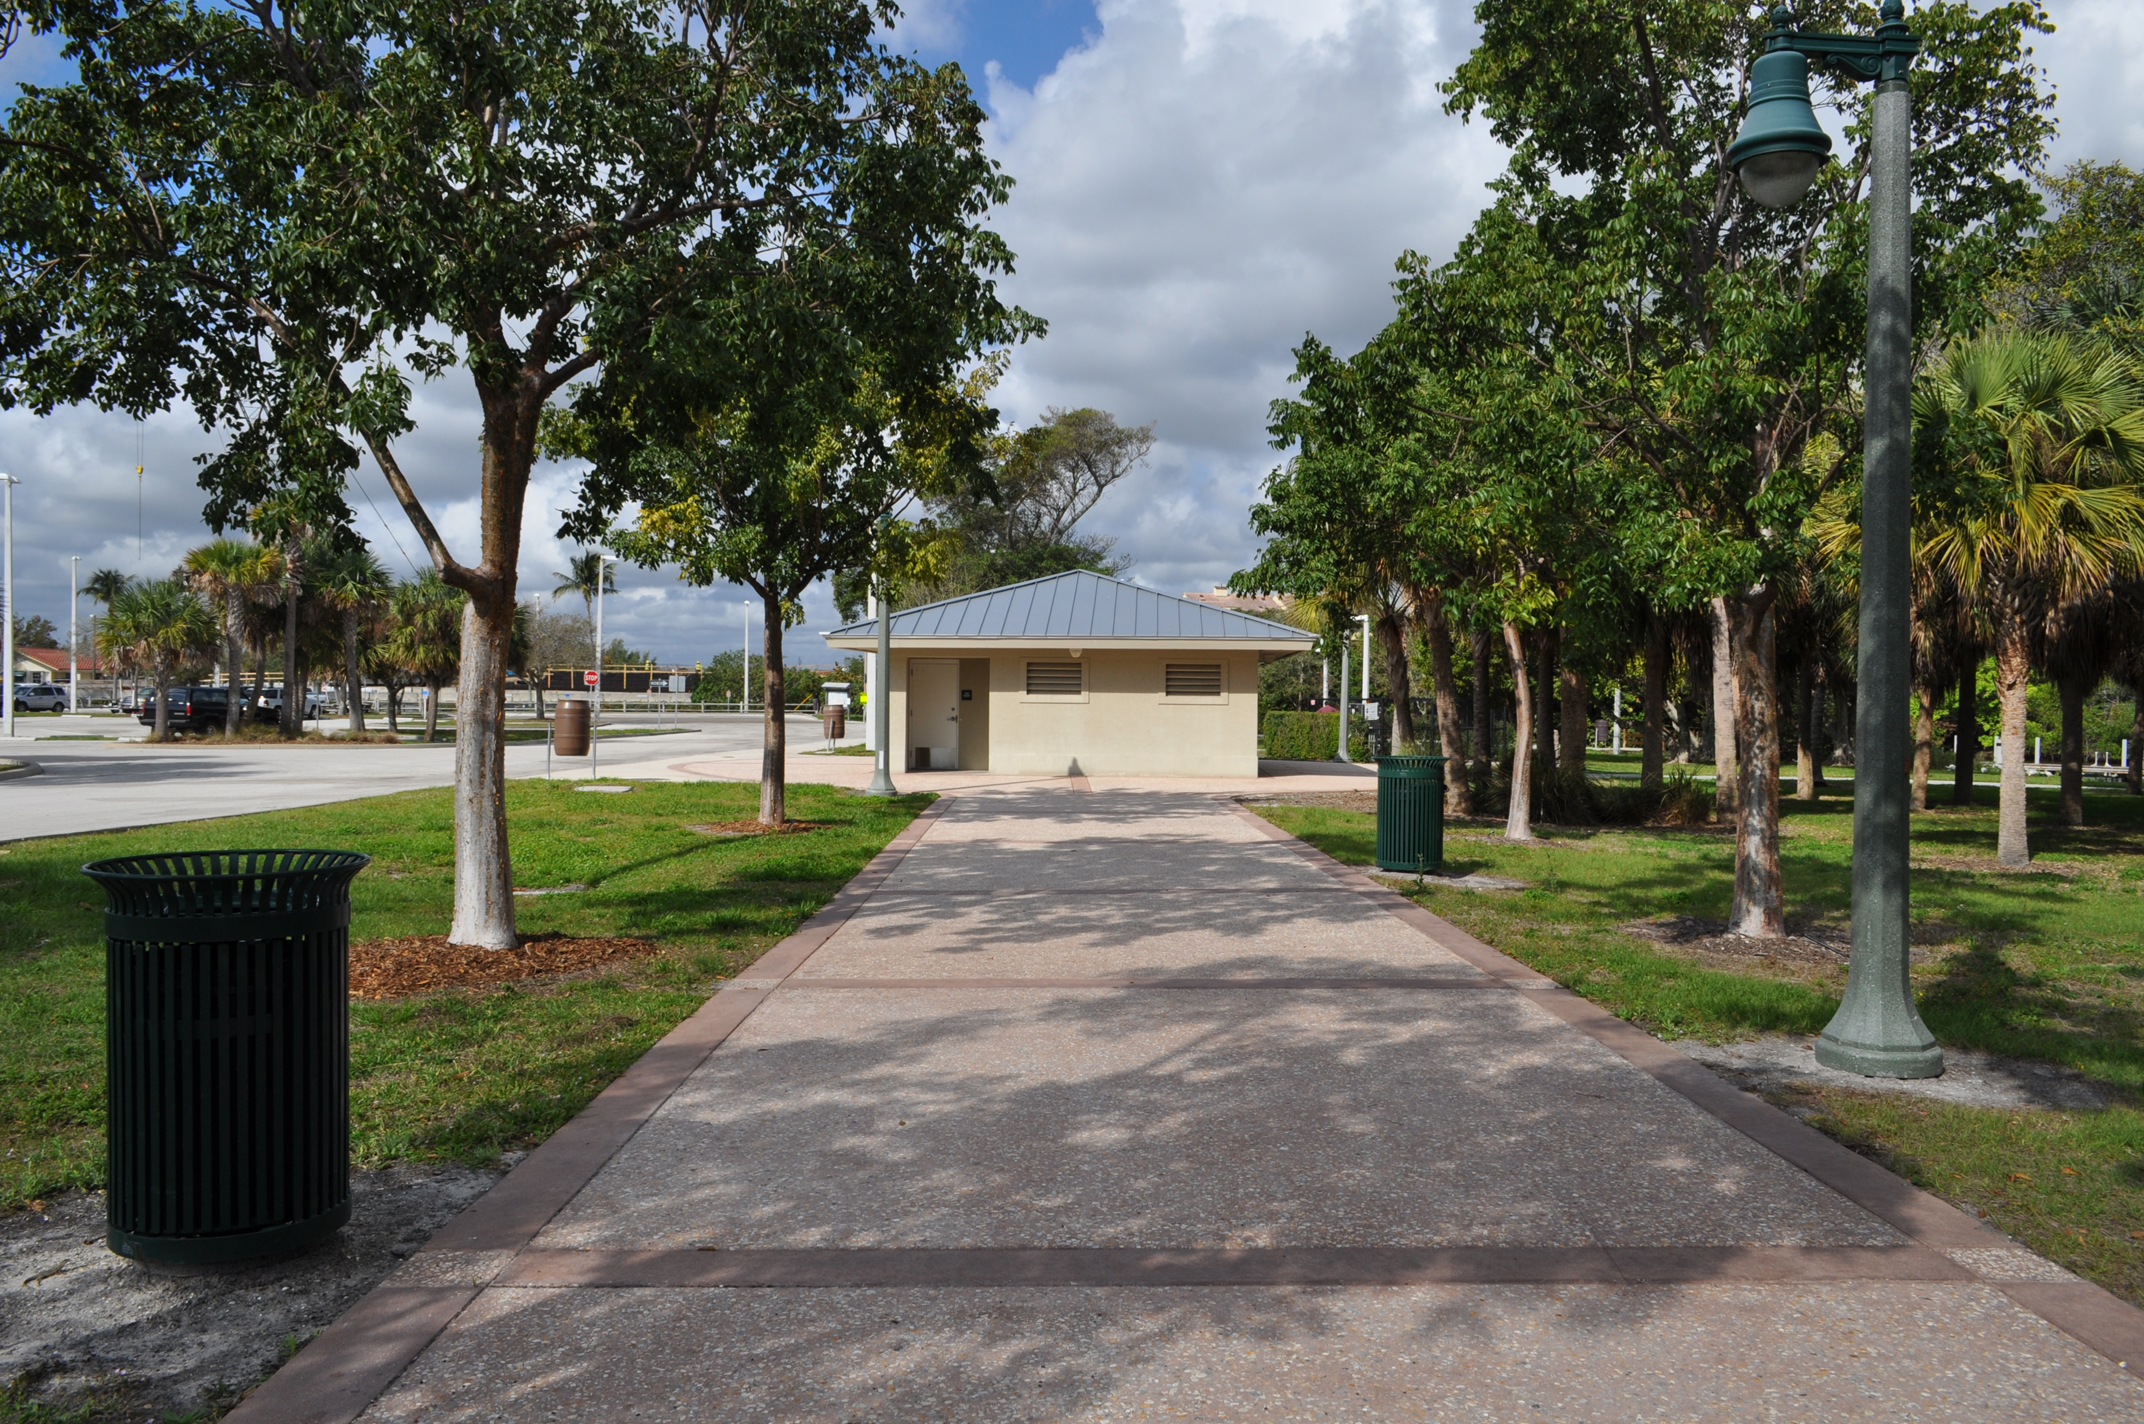 Burt Reynolds Park Palm Beach County Florida Riverwalk Tabby Concrete.JPG